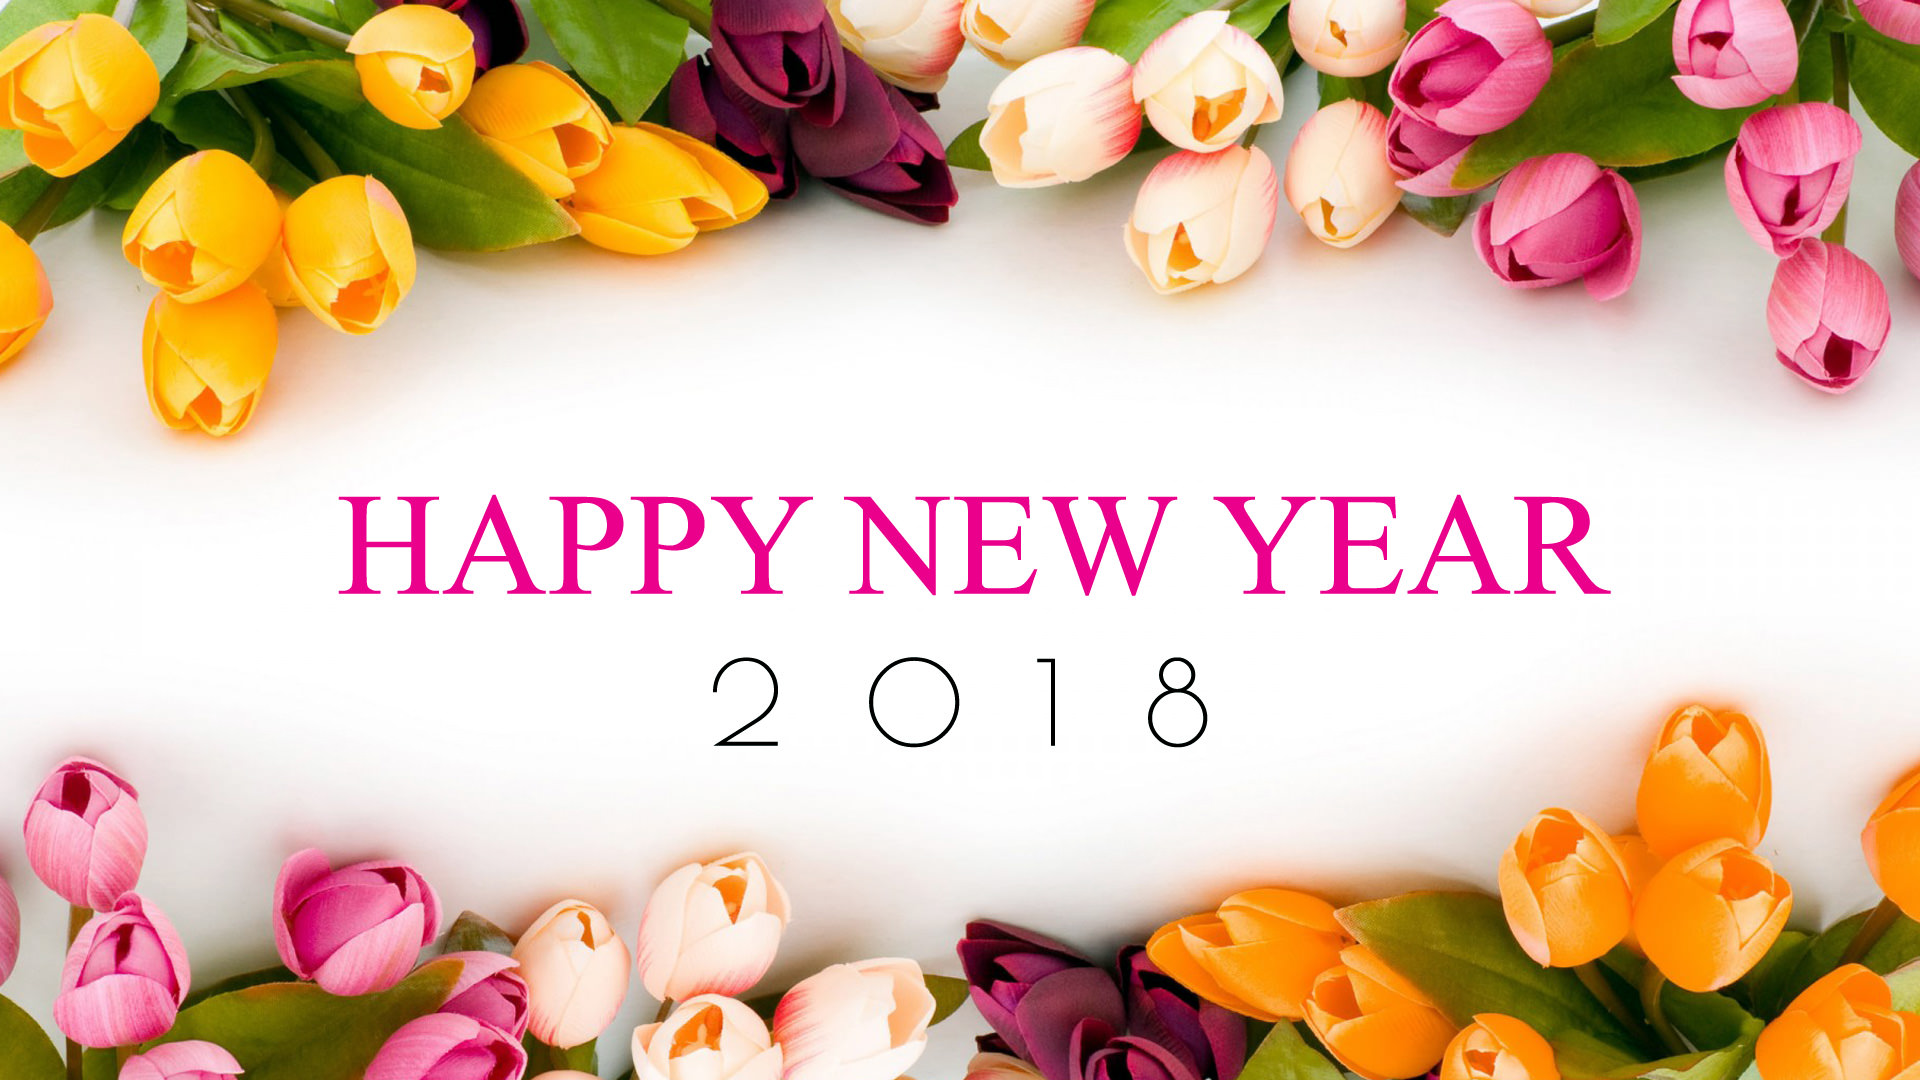 Happy New Year Flowers Hd Images Flowers Healthy